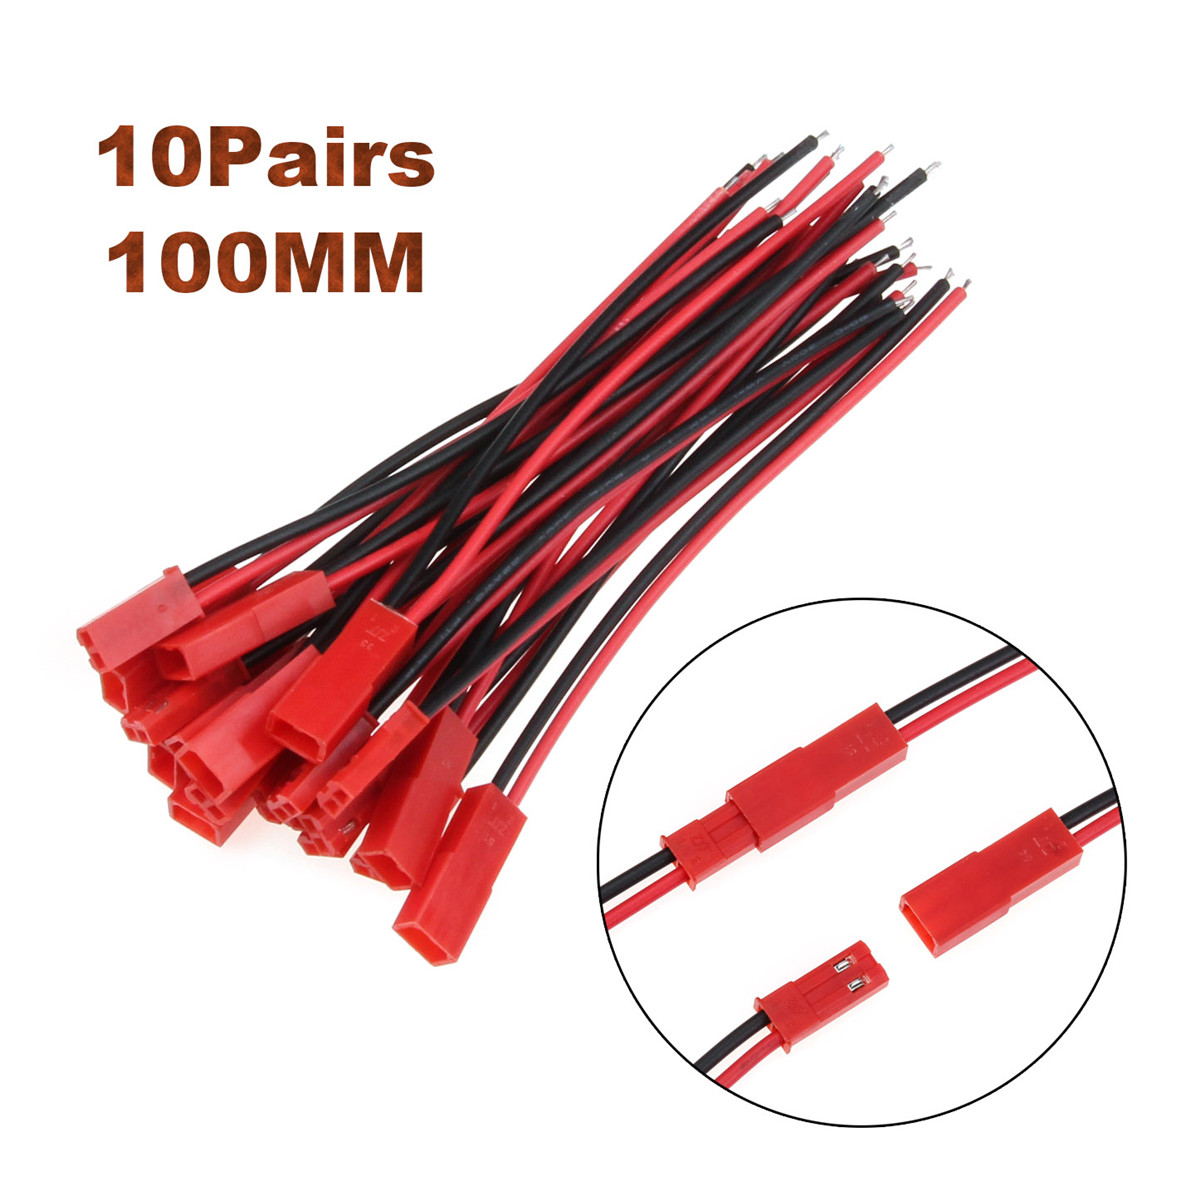 10 Set 100mm Male&Female Connector JST Plug Cable For RC BEC Battery Helicopter DIY FPV Drone 2 Pin Connectors Terminals 50pcs 25pairs 2 pin jst 100mm pitch 2 54mm male and female wire connector plug cable for diy rc battry model